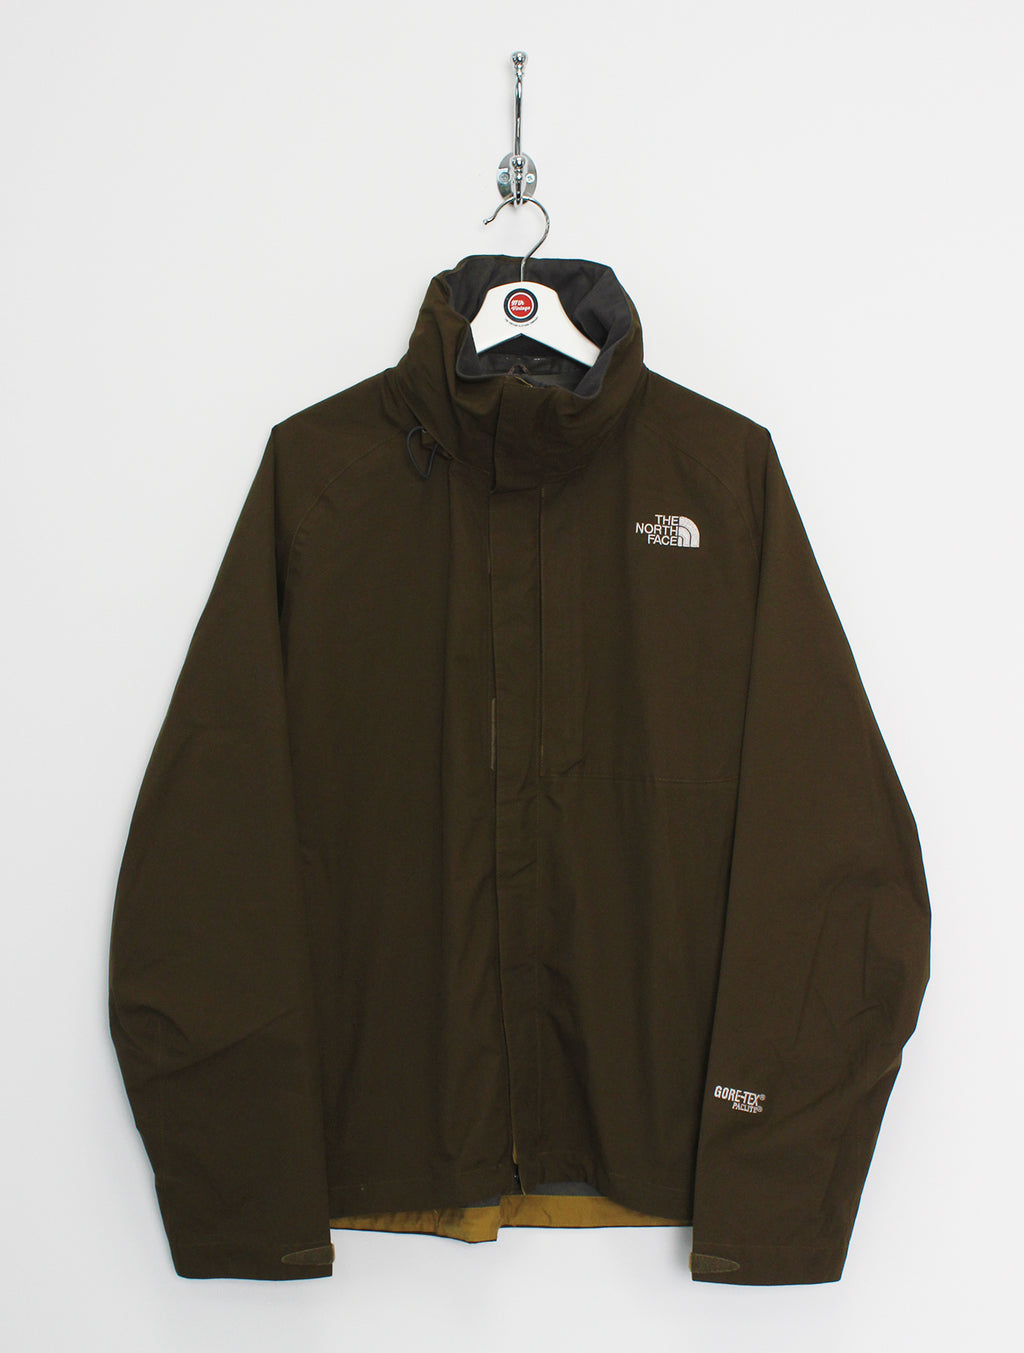 The North Face Jacket (M)